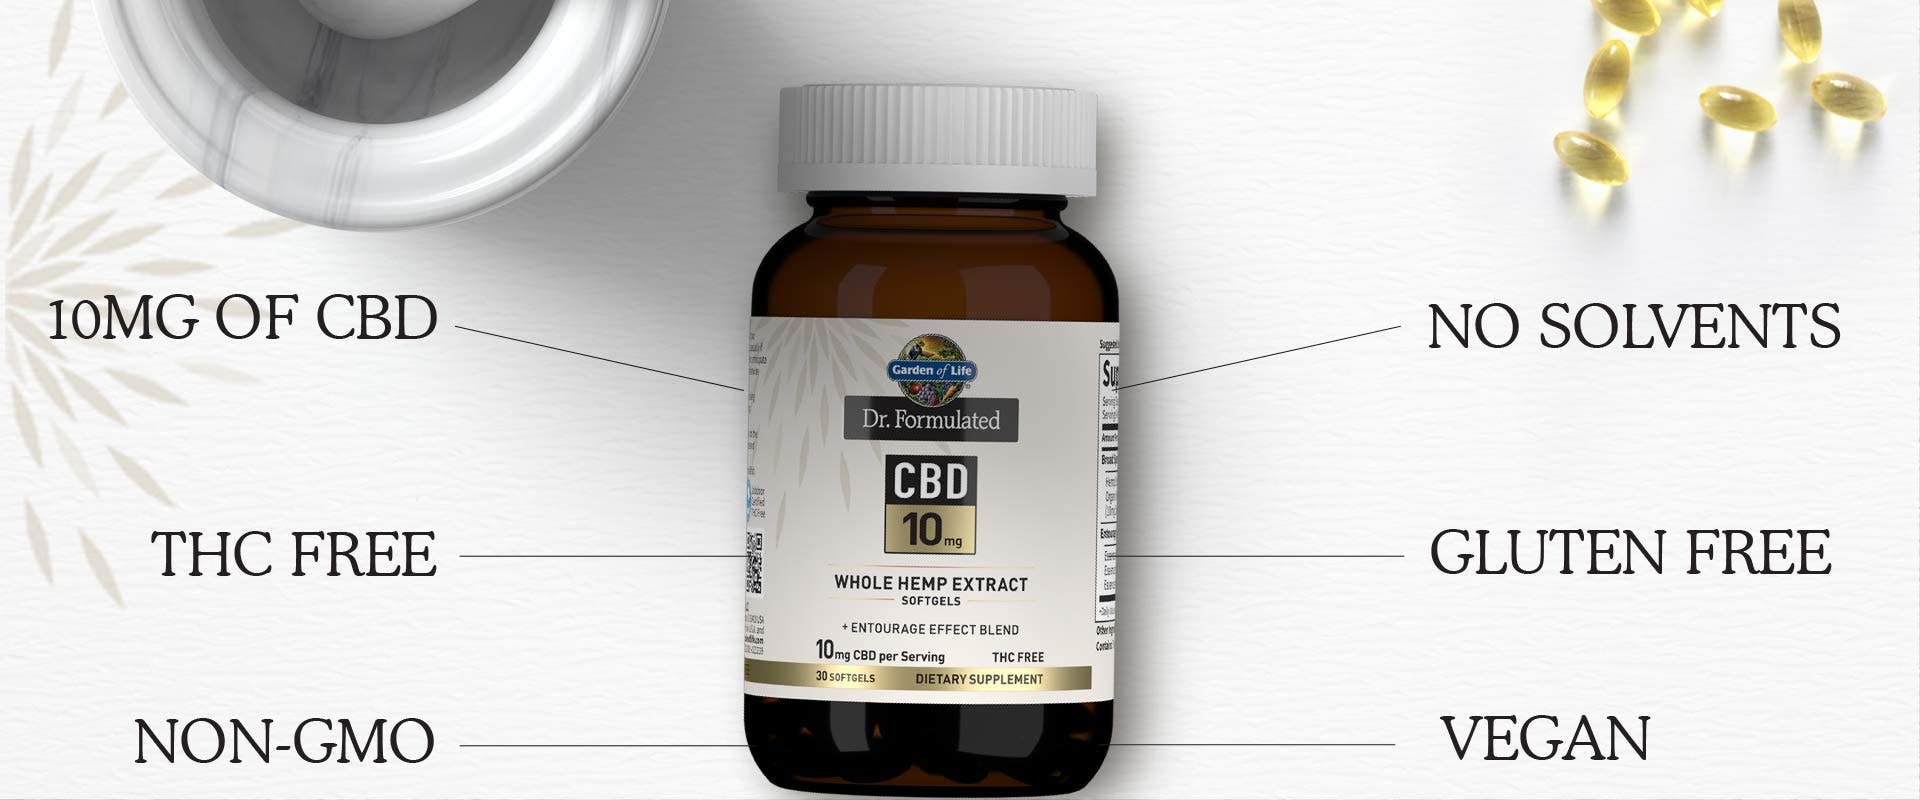 10mg CBD by Dr Formulated from Garden of Life